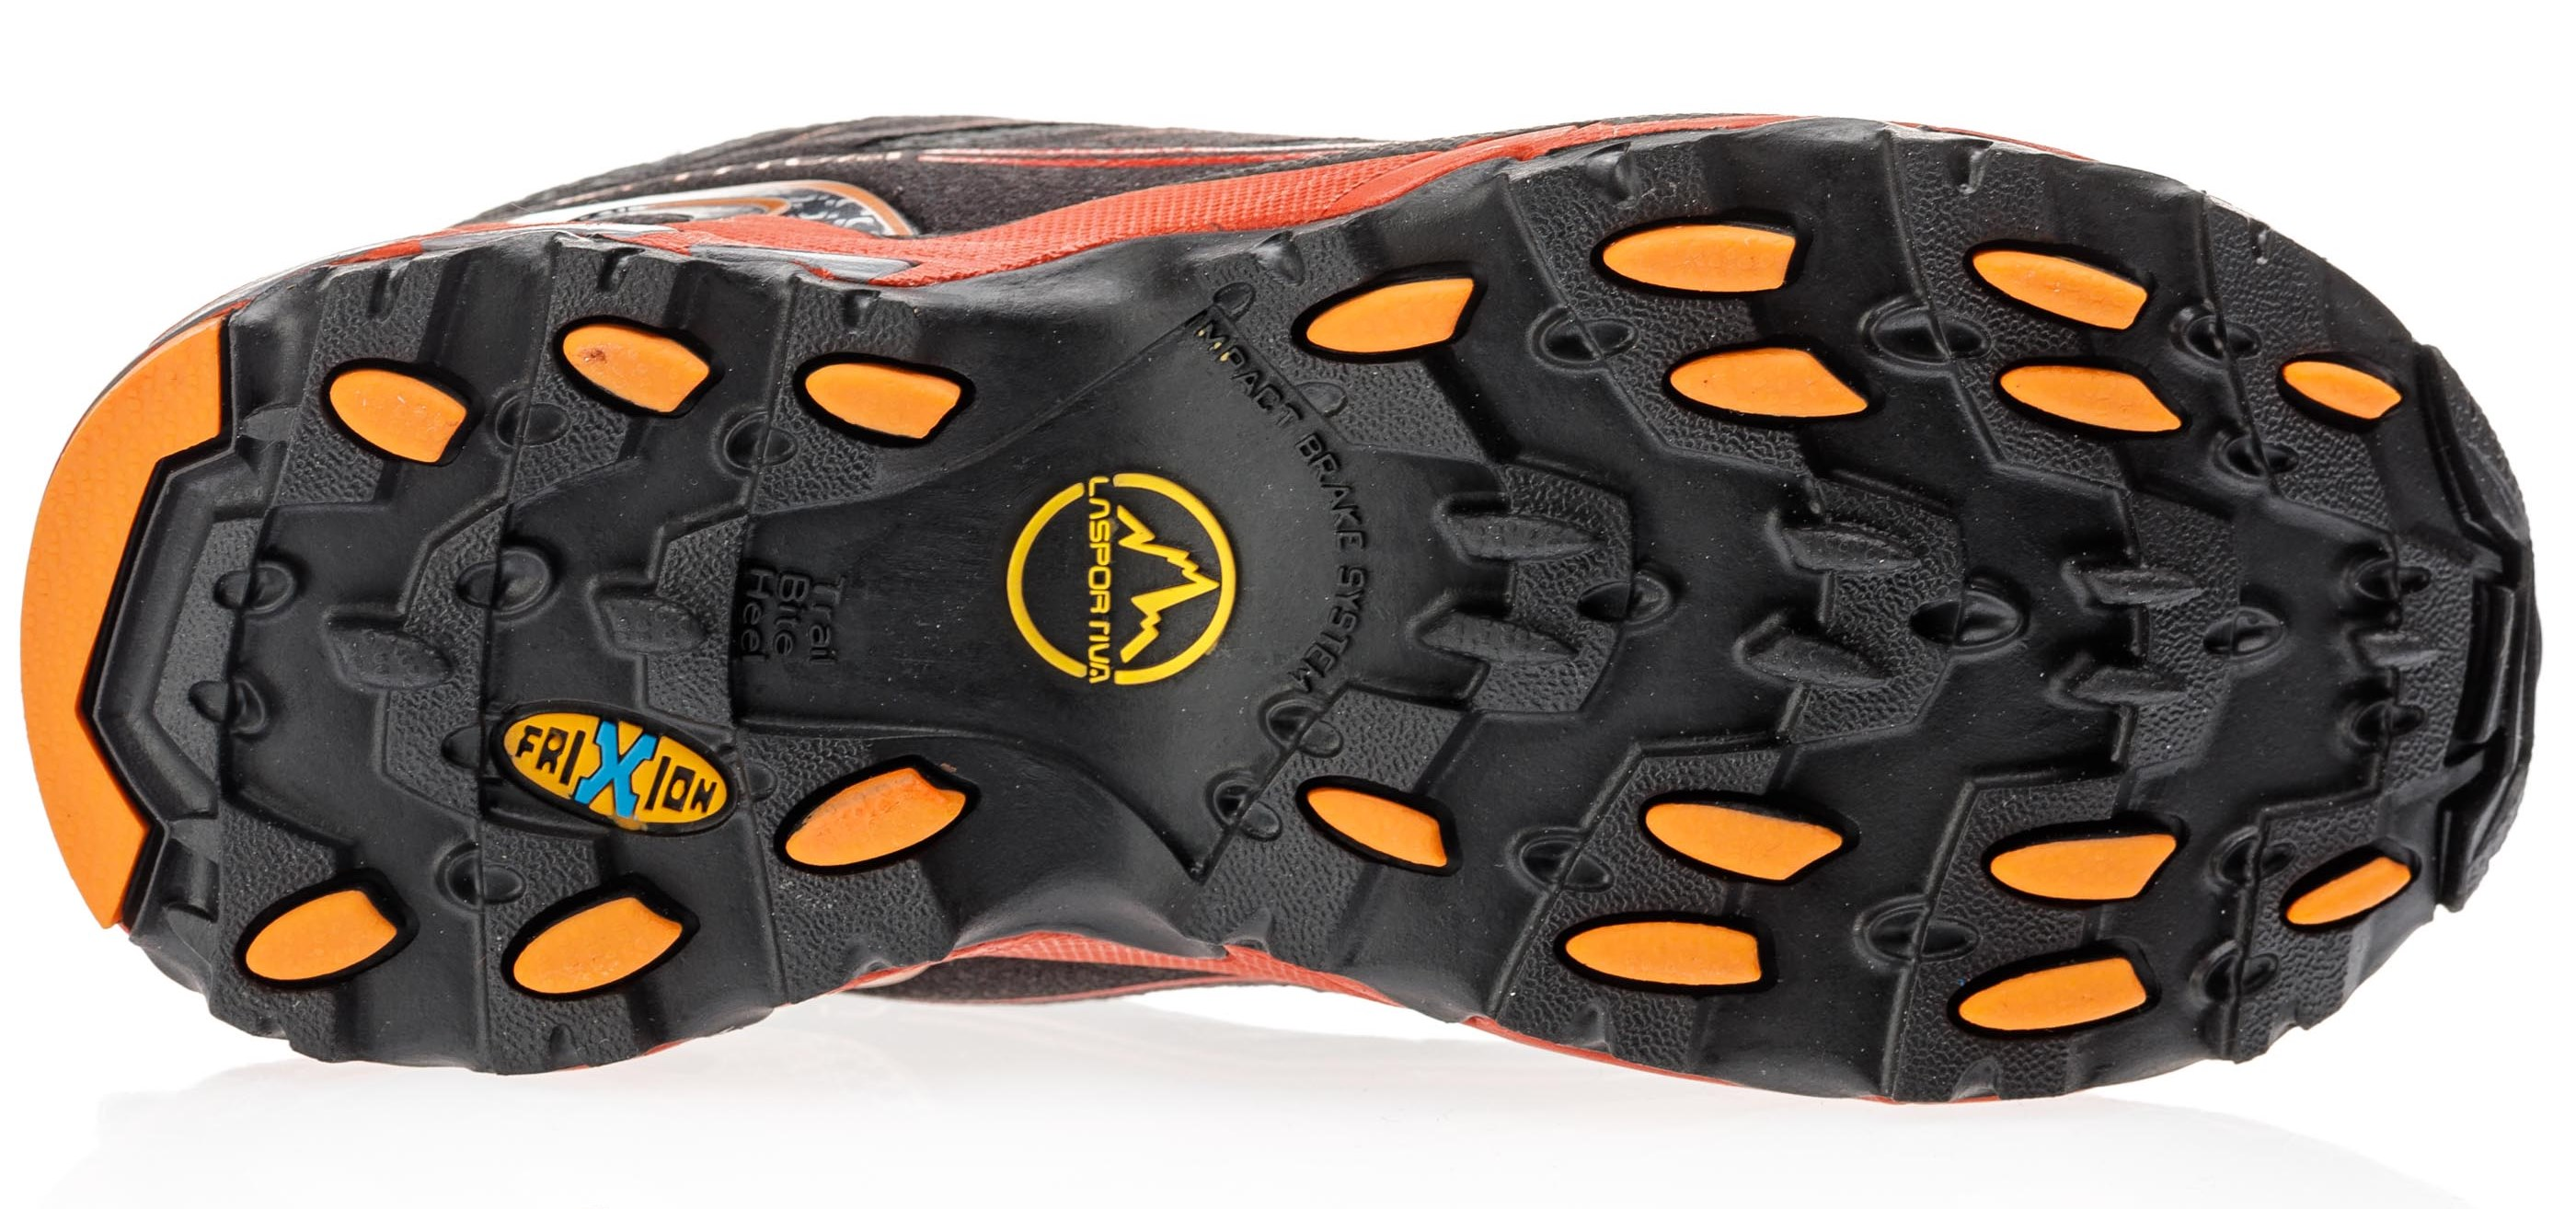 Ботинки детские La Sportiva Falkon Low Carbon/Flame - Фото 2 большая